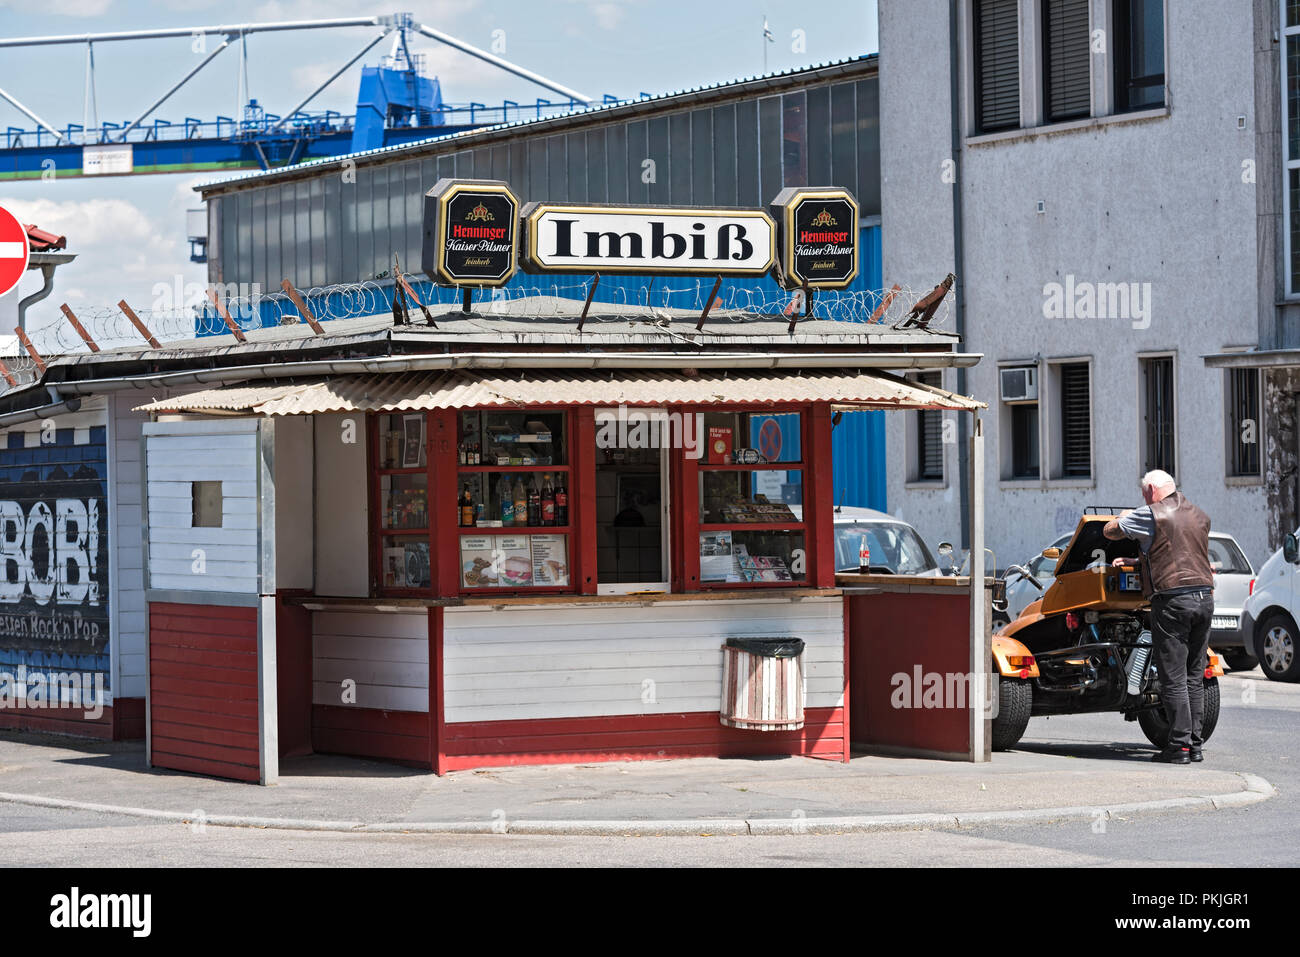 food stand in the east harbor frankfurt am main, hesse, germany. - Stock Image